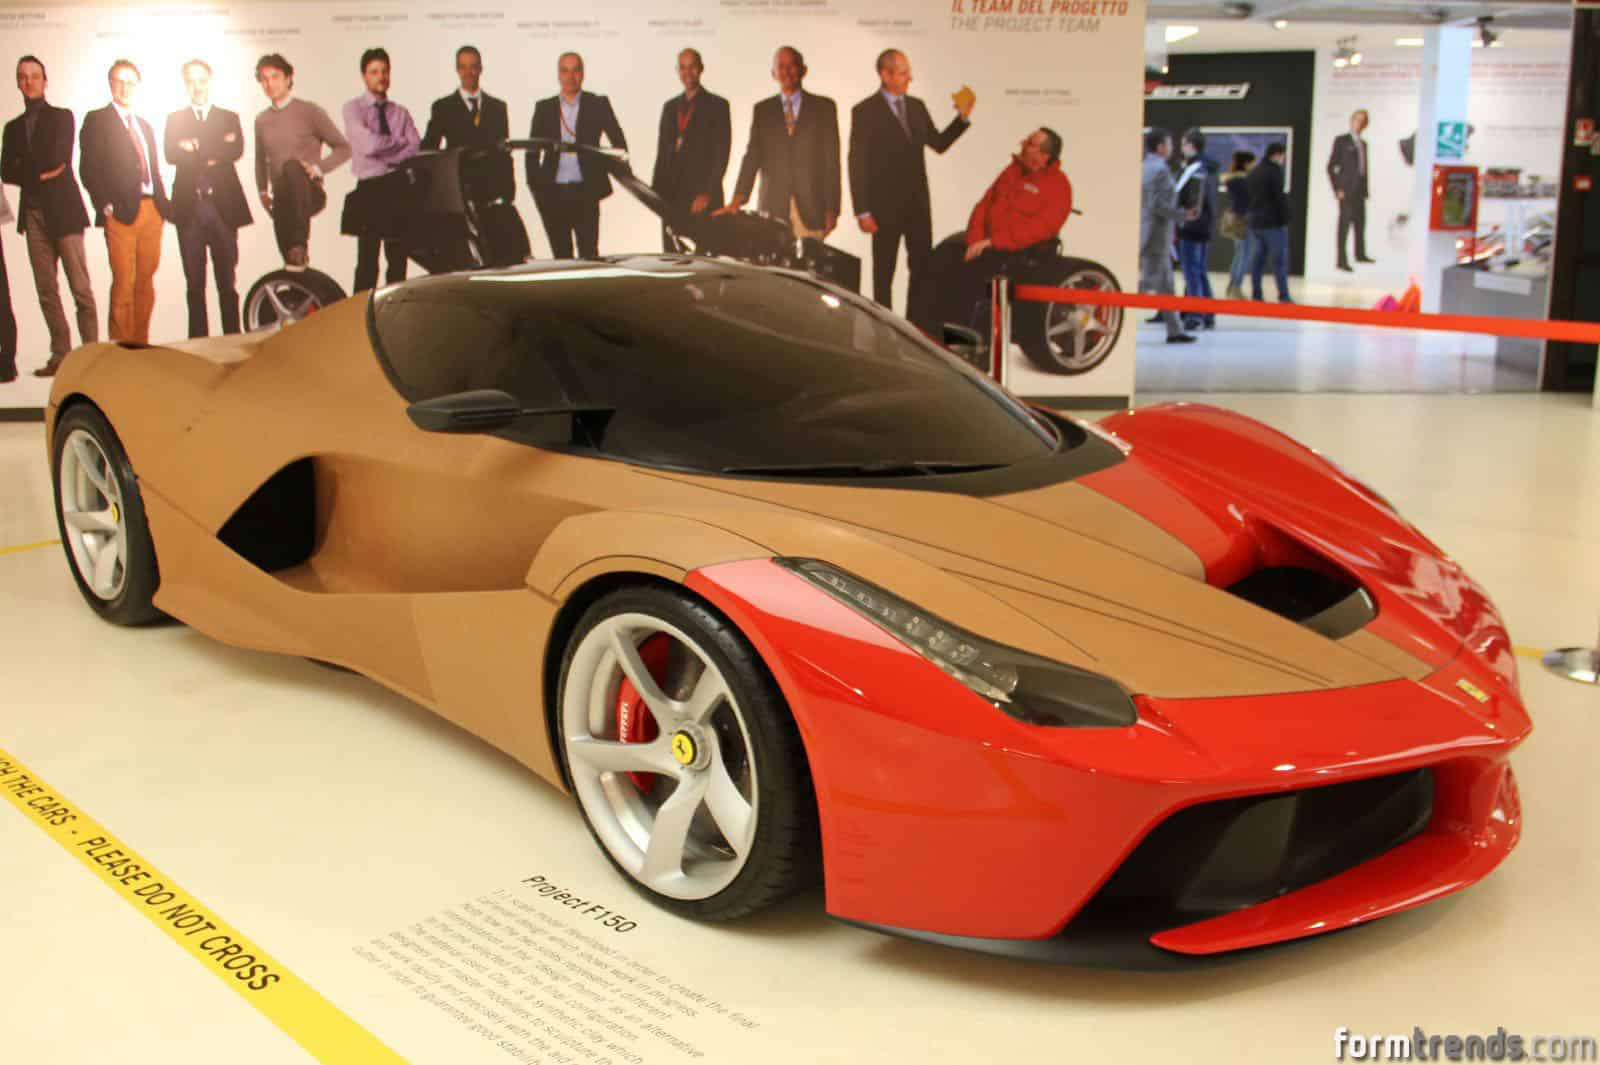 Billy Craft Honda >> Ferrari Design Director Creates LaFerrari Spacecraft ...